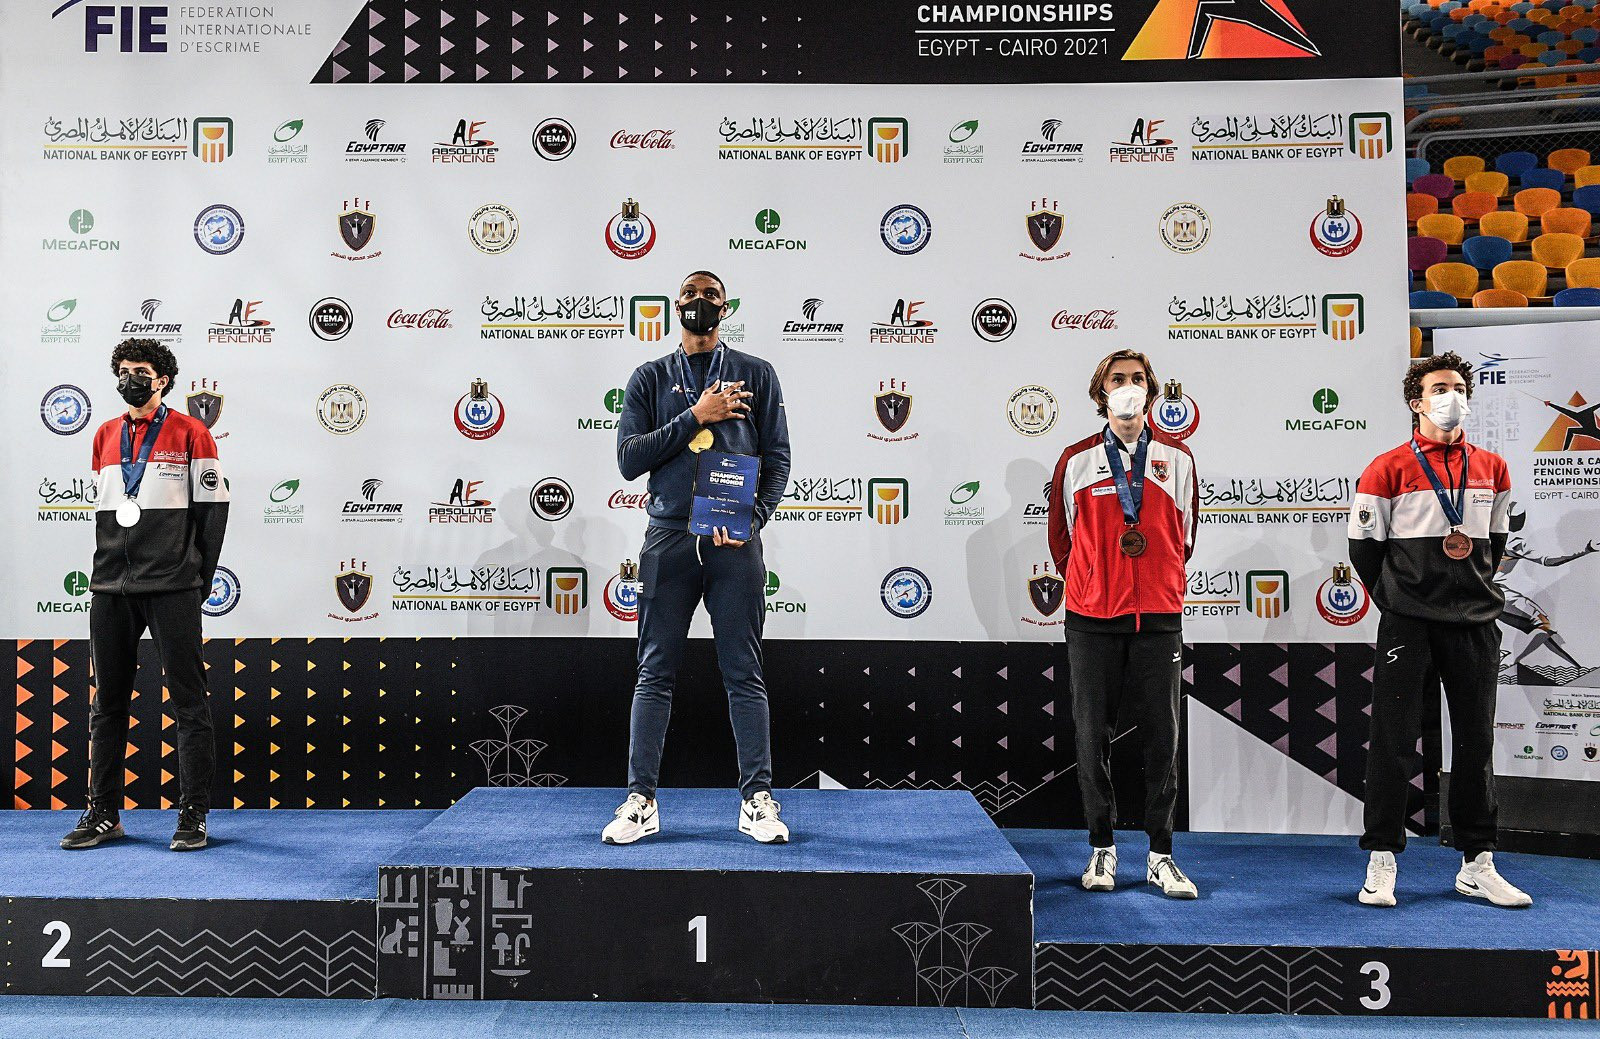 More Russian gold as junior épée titles awarded in Cairo